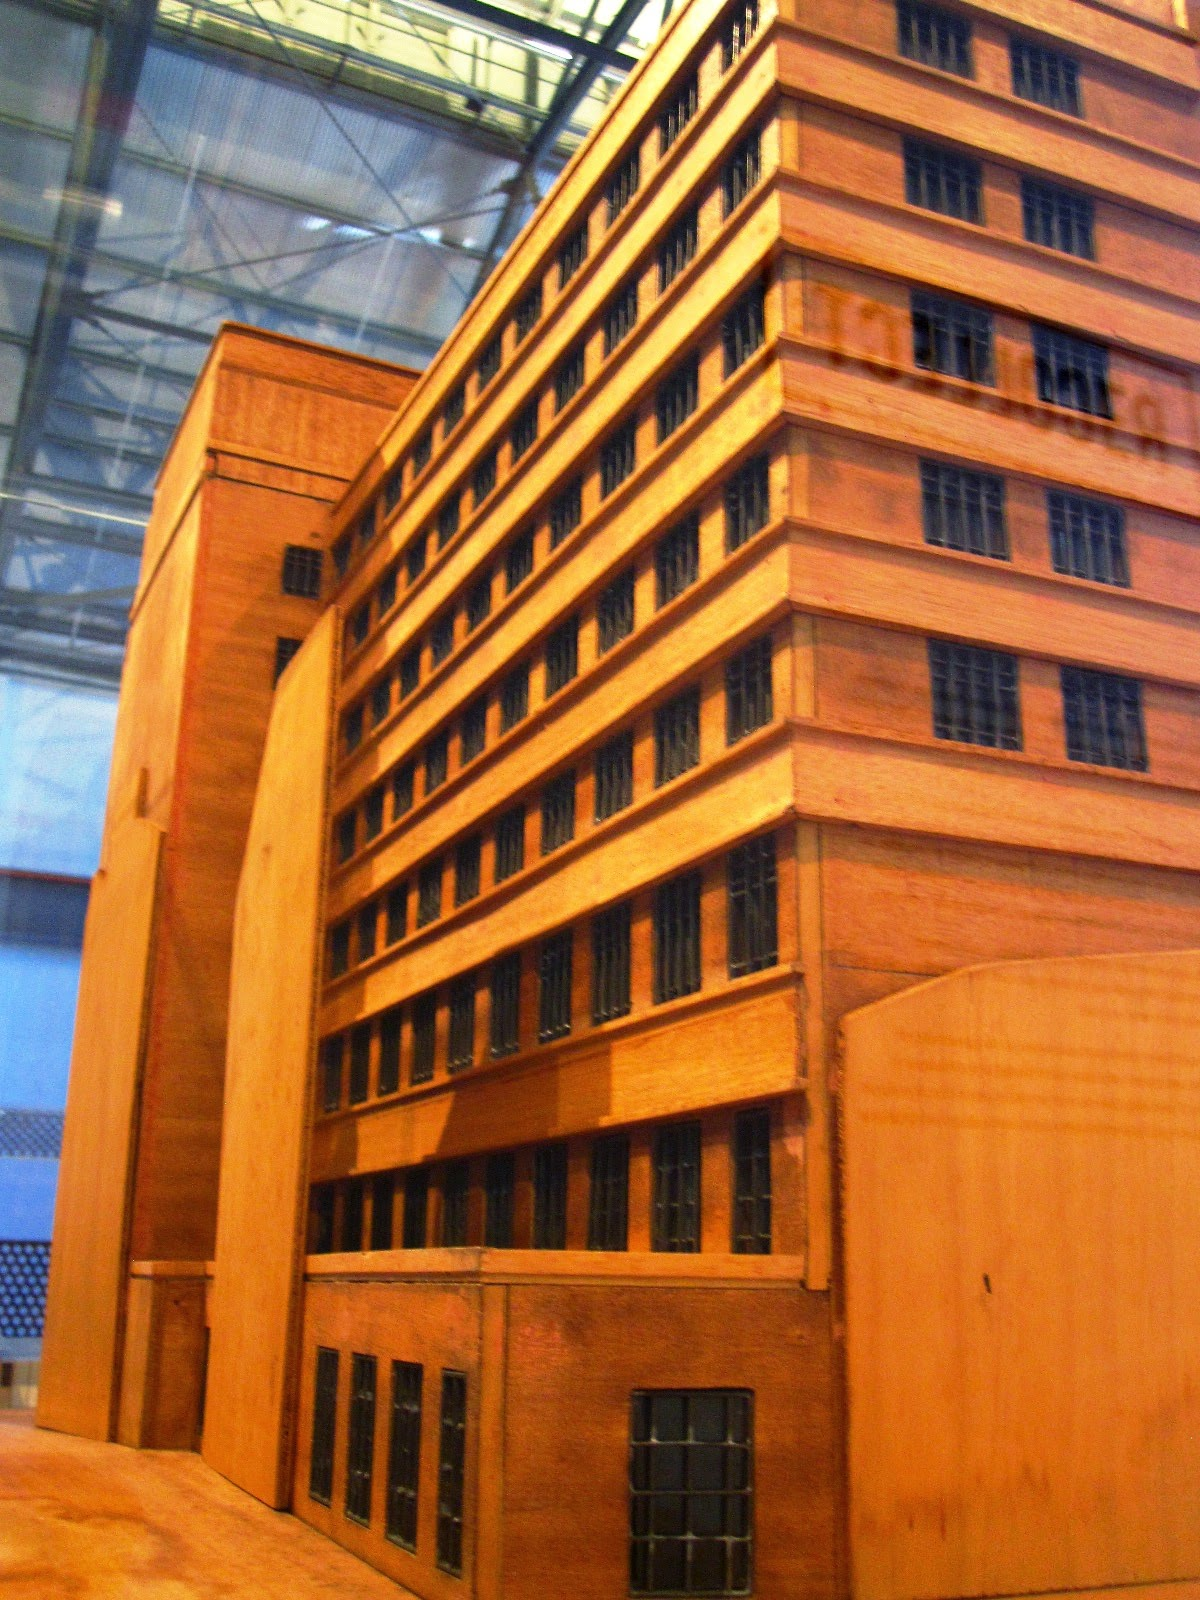 Wooden model of the Metropolitan Water Sewerage and Drainage Board building.